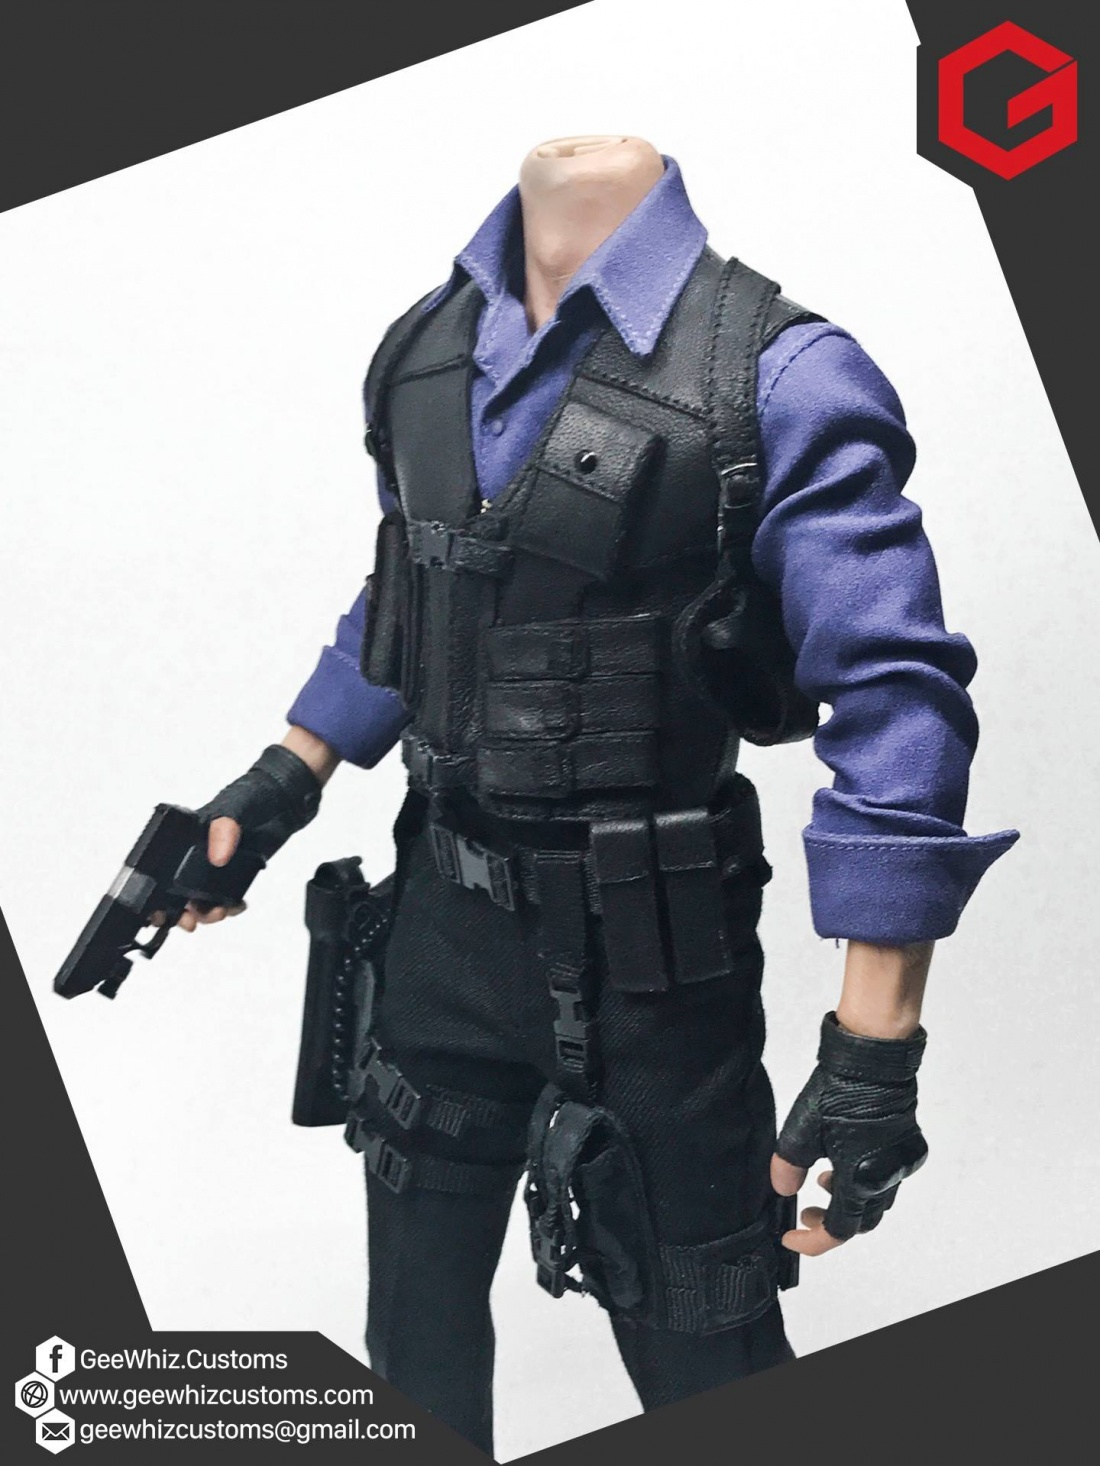 Geewhiz Customs Leon Kennedy Re6 China Outfit